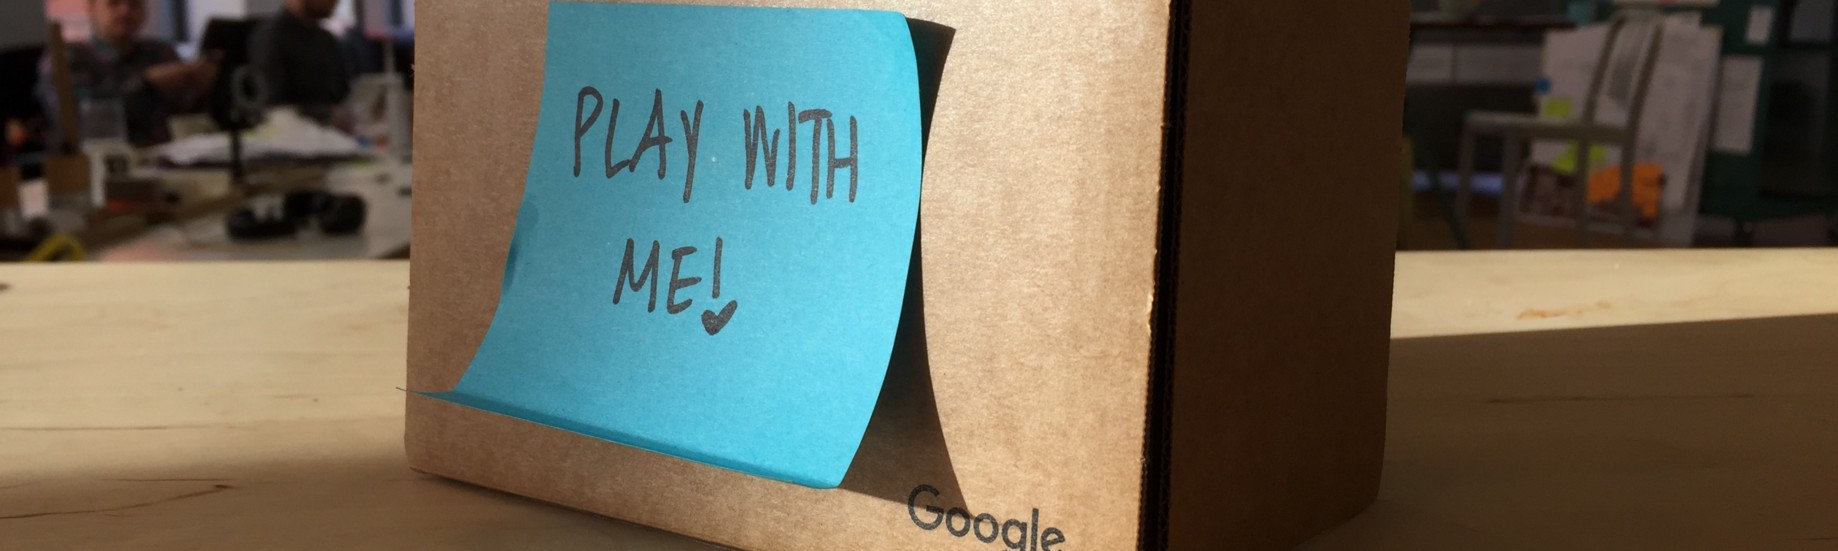 Quick & dirty prototyping with Google Cardboard - Common